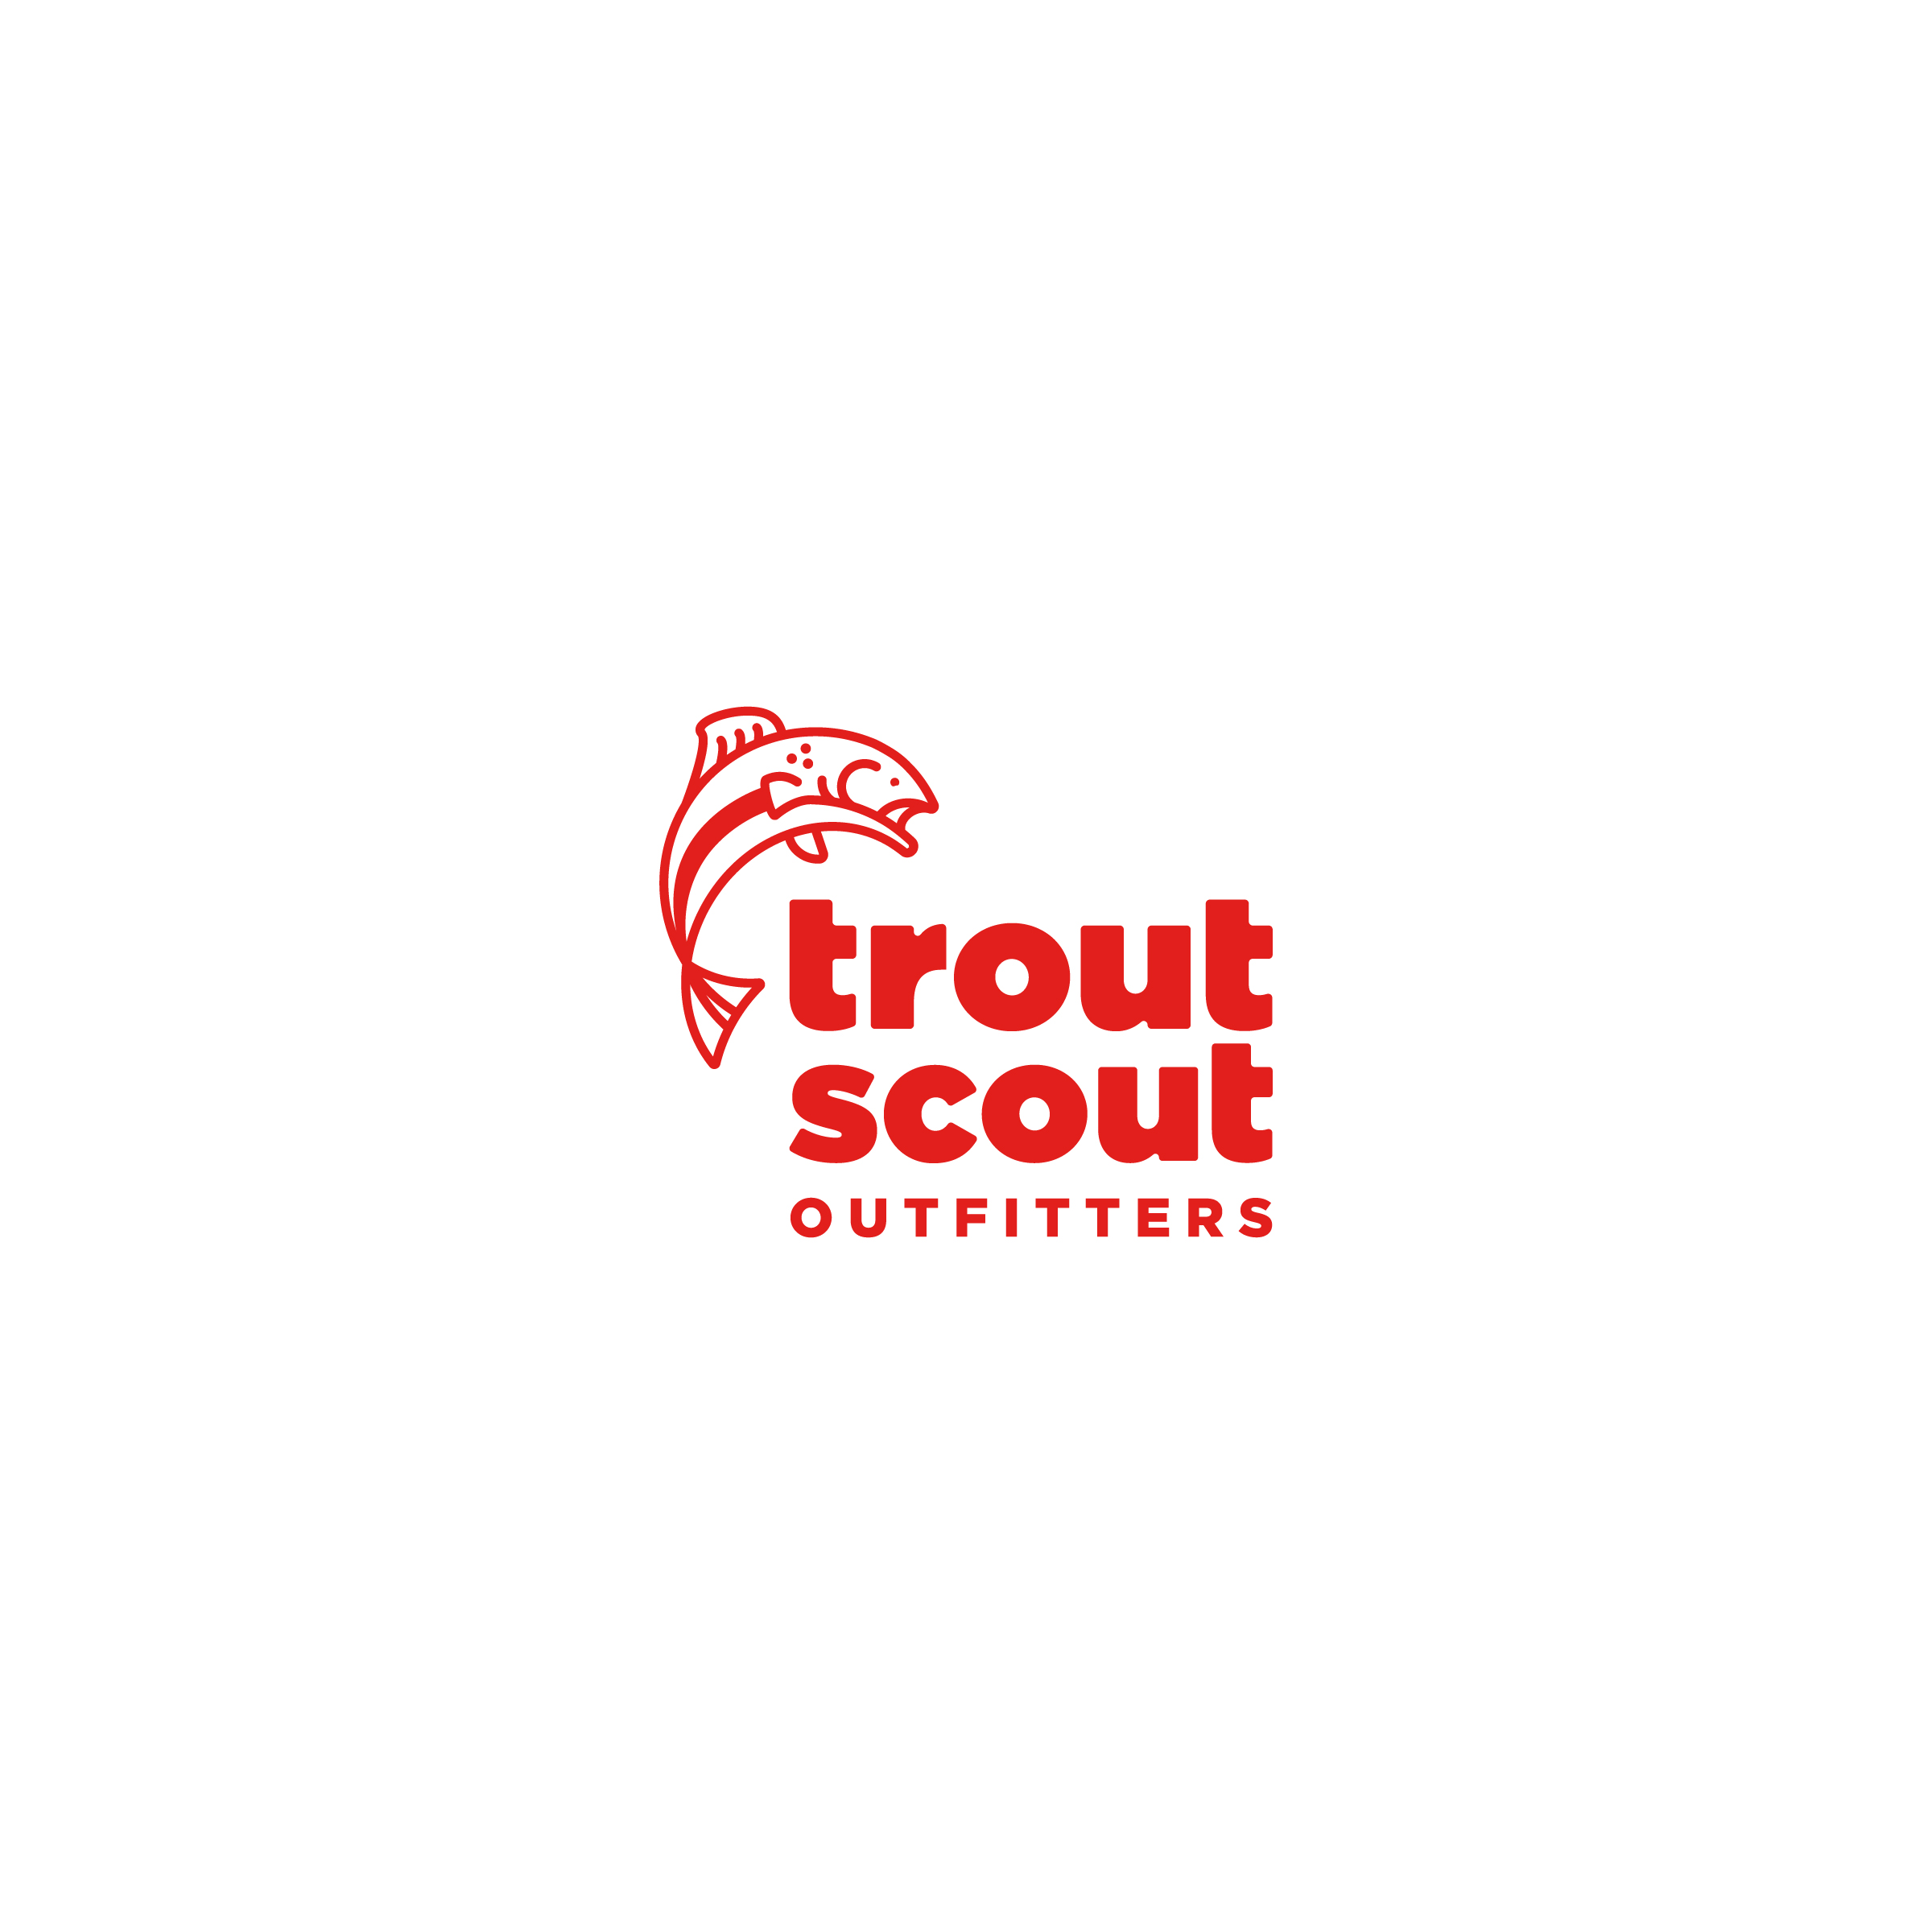 TroutScoutOutfitters_Red_Vert.jpg